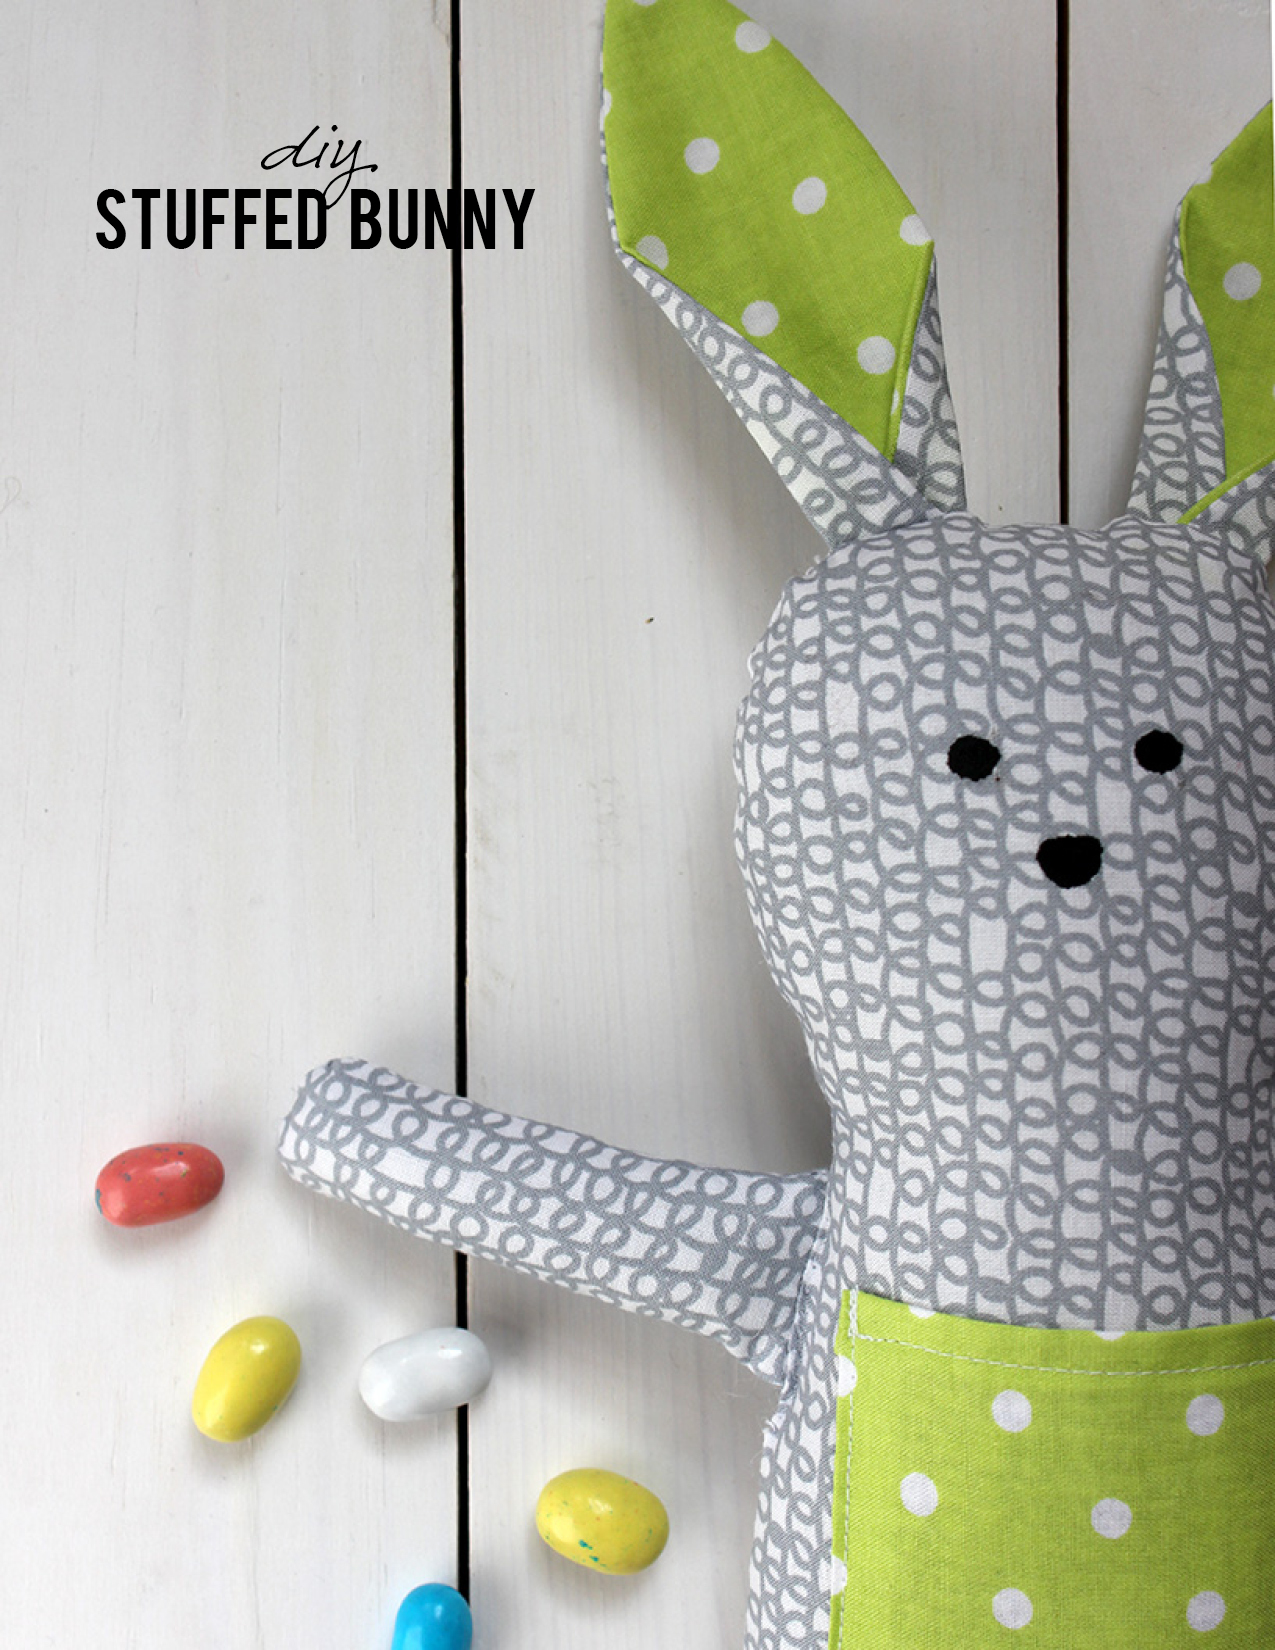 I've complied over 20 Easter Sewing and Quilting projects that are perfect for having a Handmade Easter! Check them out!#EasterSewing #EasterQuilts #EasterBasket #EasterBunny #HowToMake #FreePattern #forBeginners #Easy #ForTheHome #DIY #Sewing #ForGifts #Beginner #simple #Free #Fun #quick #quilt #Quilts #Quilting #ideas #modern#ToMake #Designs #Simple #Blocks #Tutorial #handmade #Project #Patchwork #DIY #Fabric #SewMuchMoore #SewMuchMooreInStore